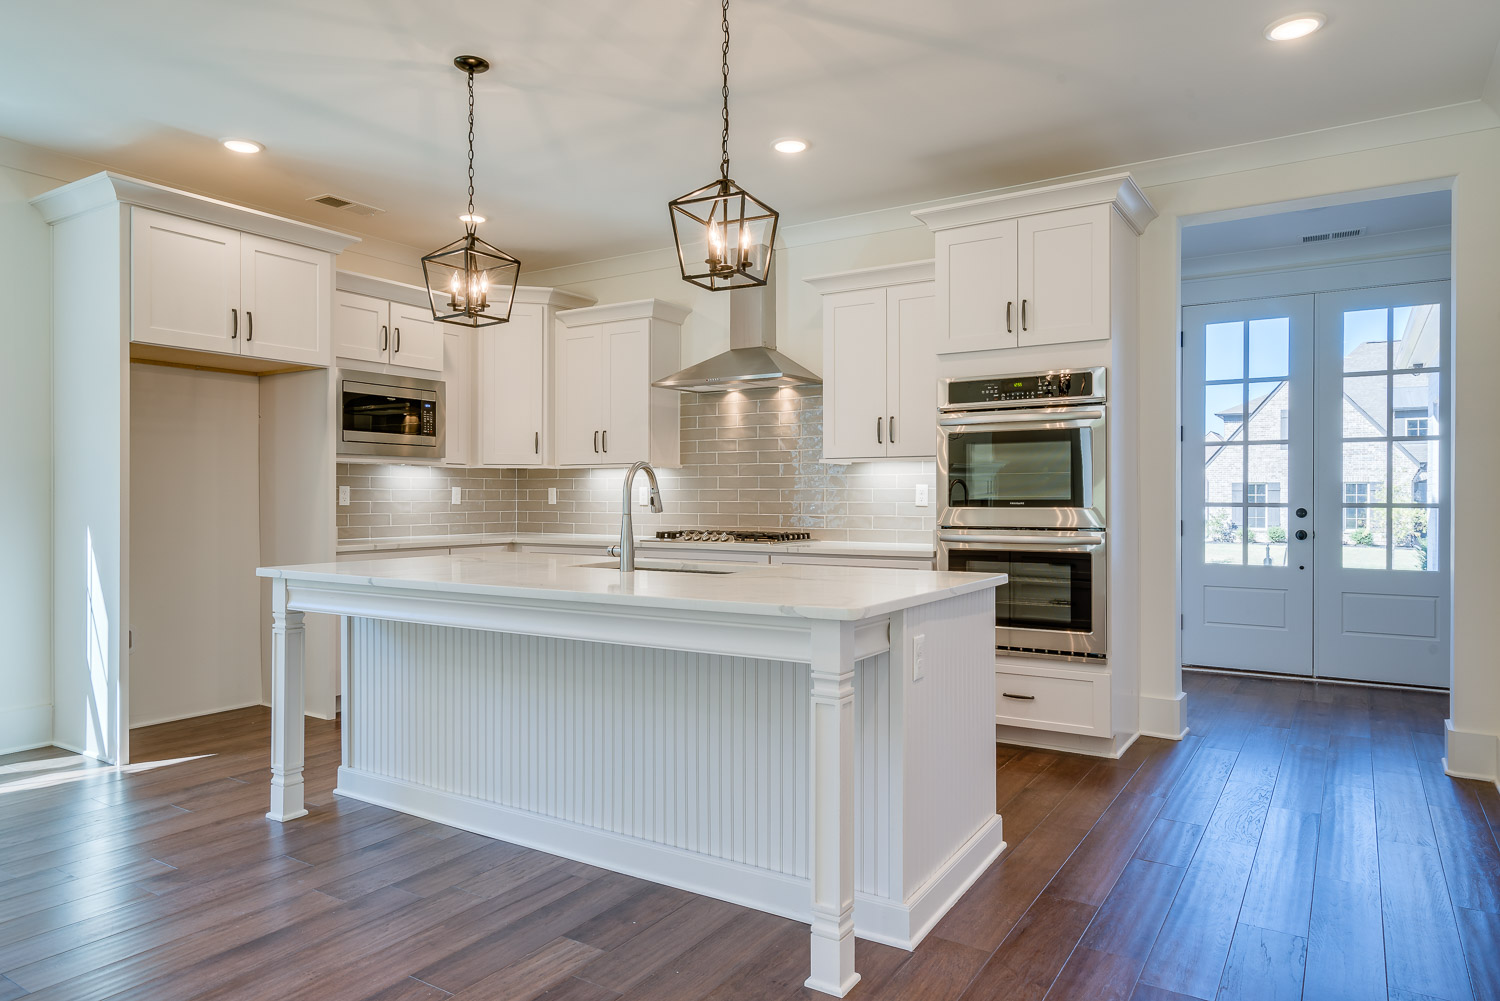 kitchen in home built by OakRun Homes